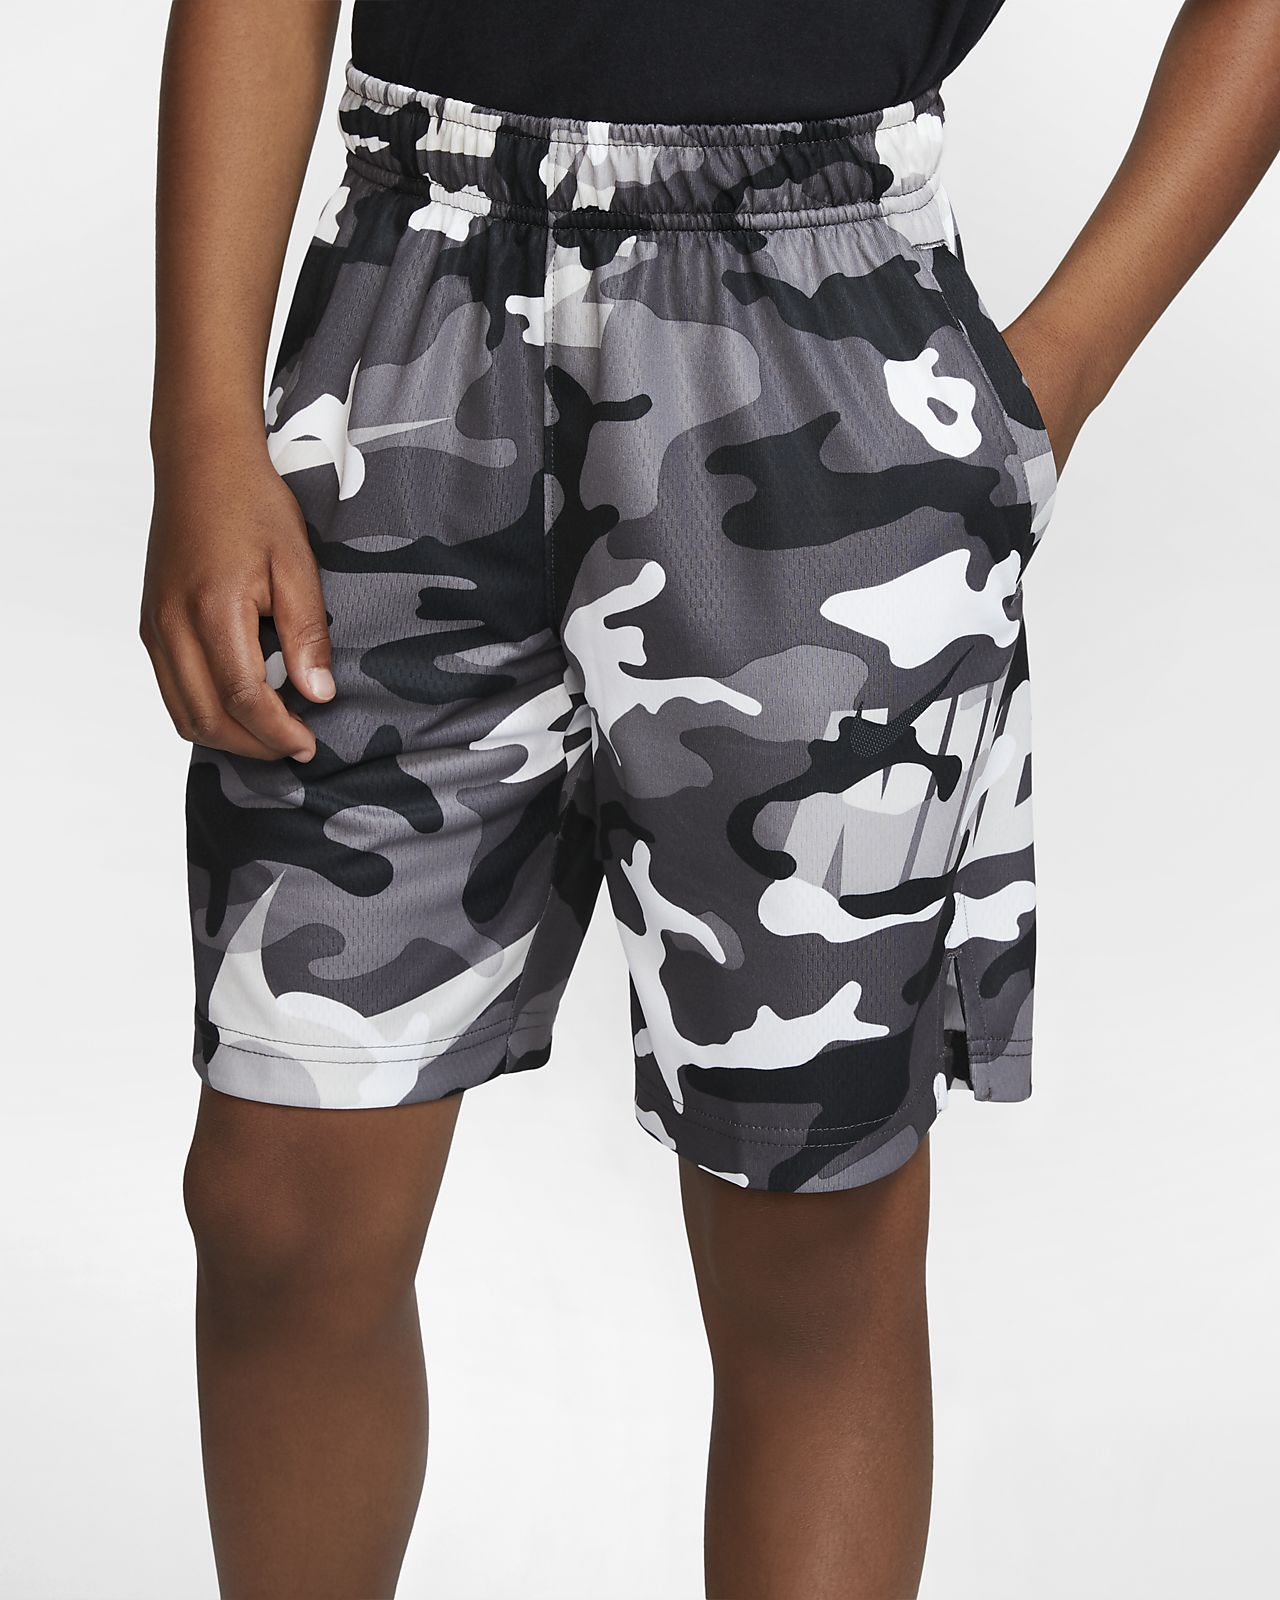 Nike Dri-FIT Boys' Camo Training Shorts